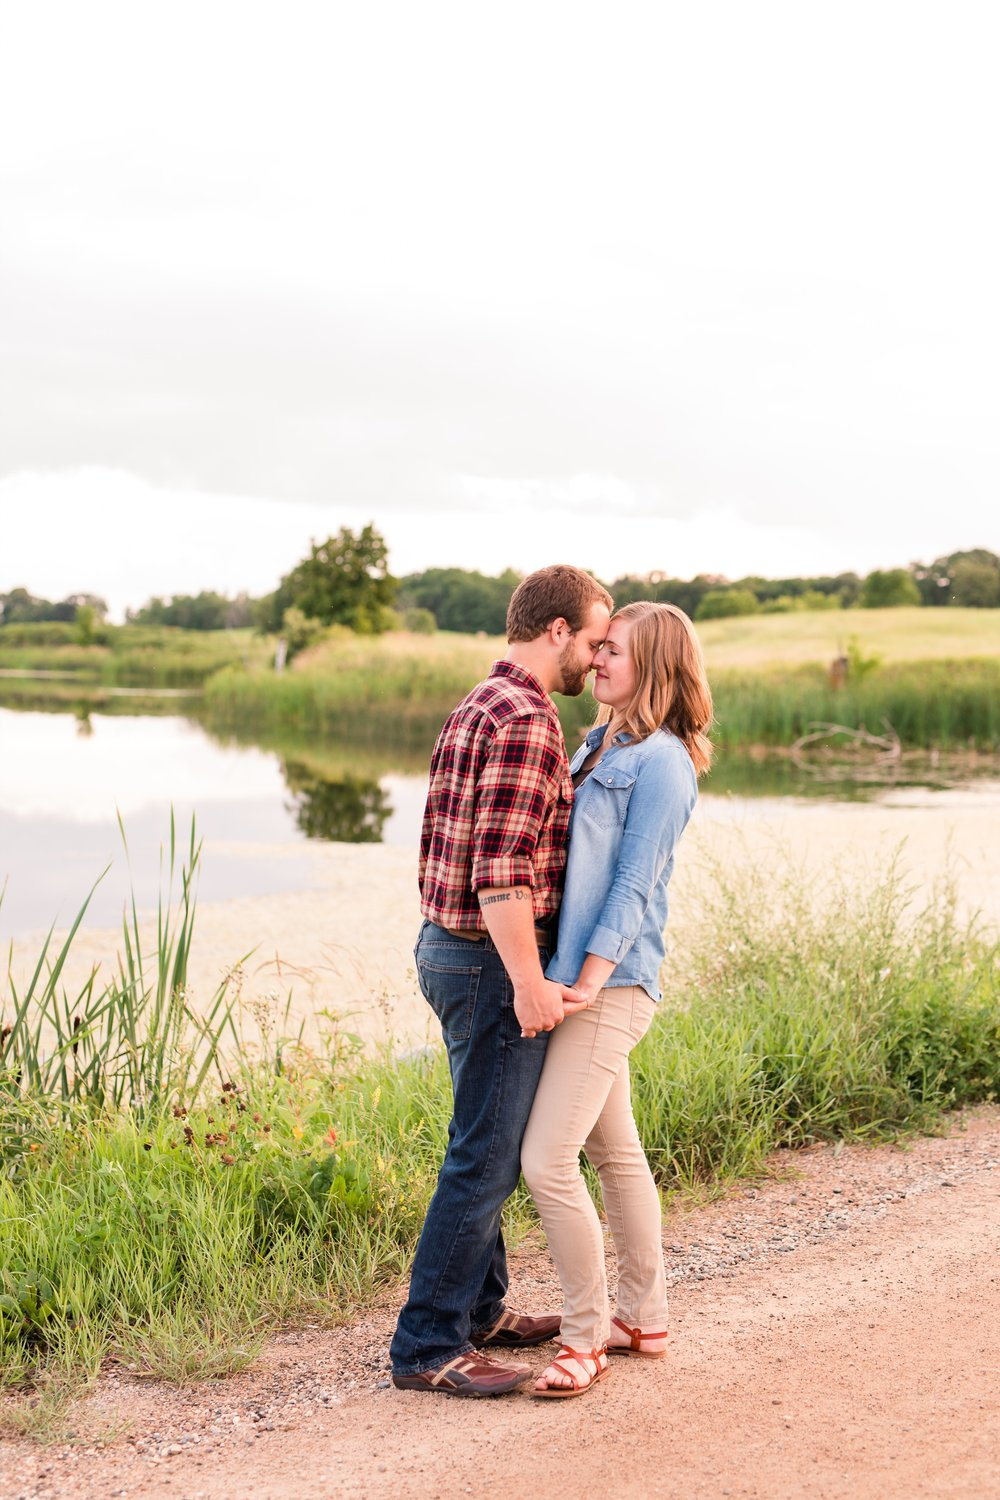 AmberLangerudPhotography_Countryside Engagement Session in Minnesota_3135.jpg